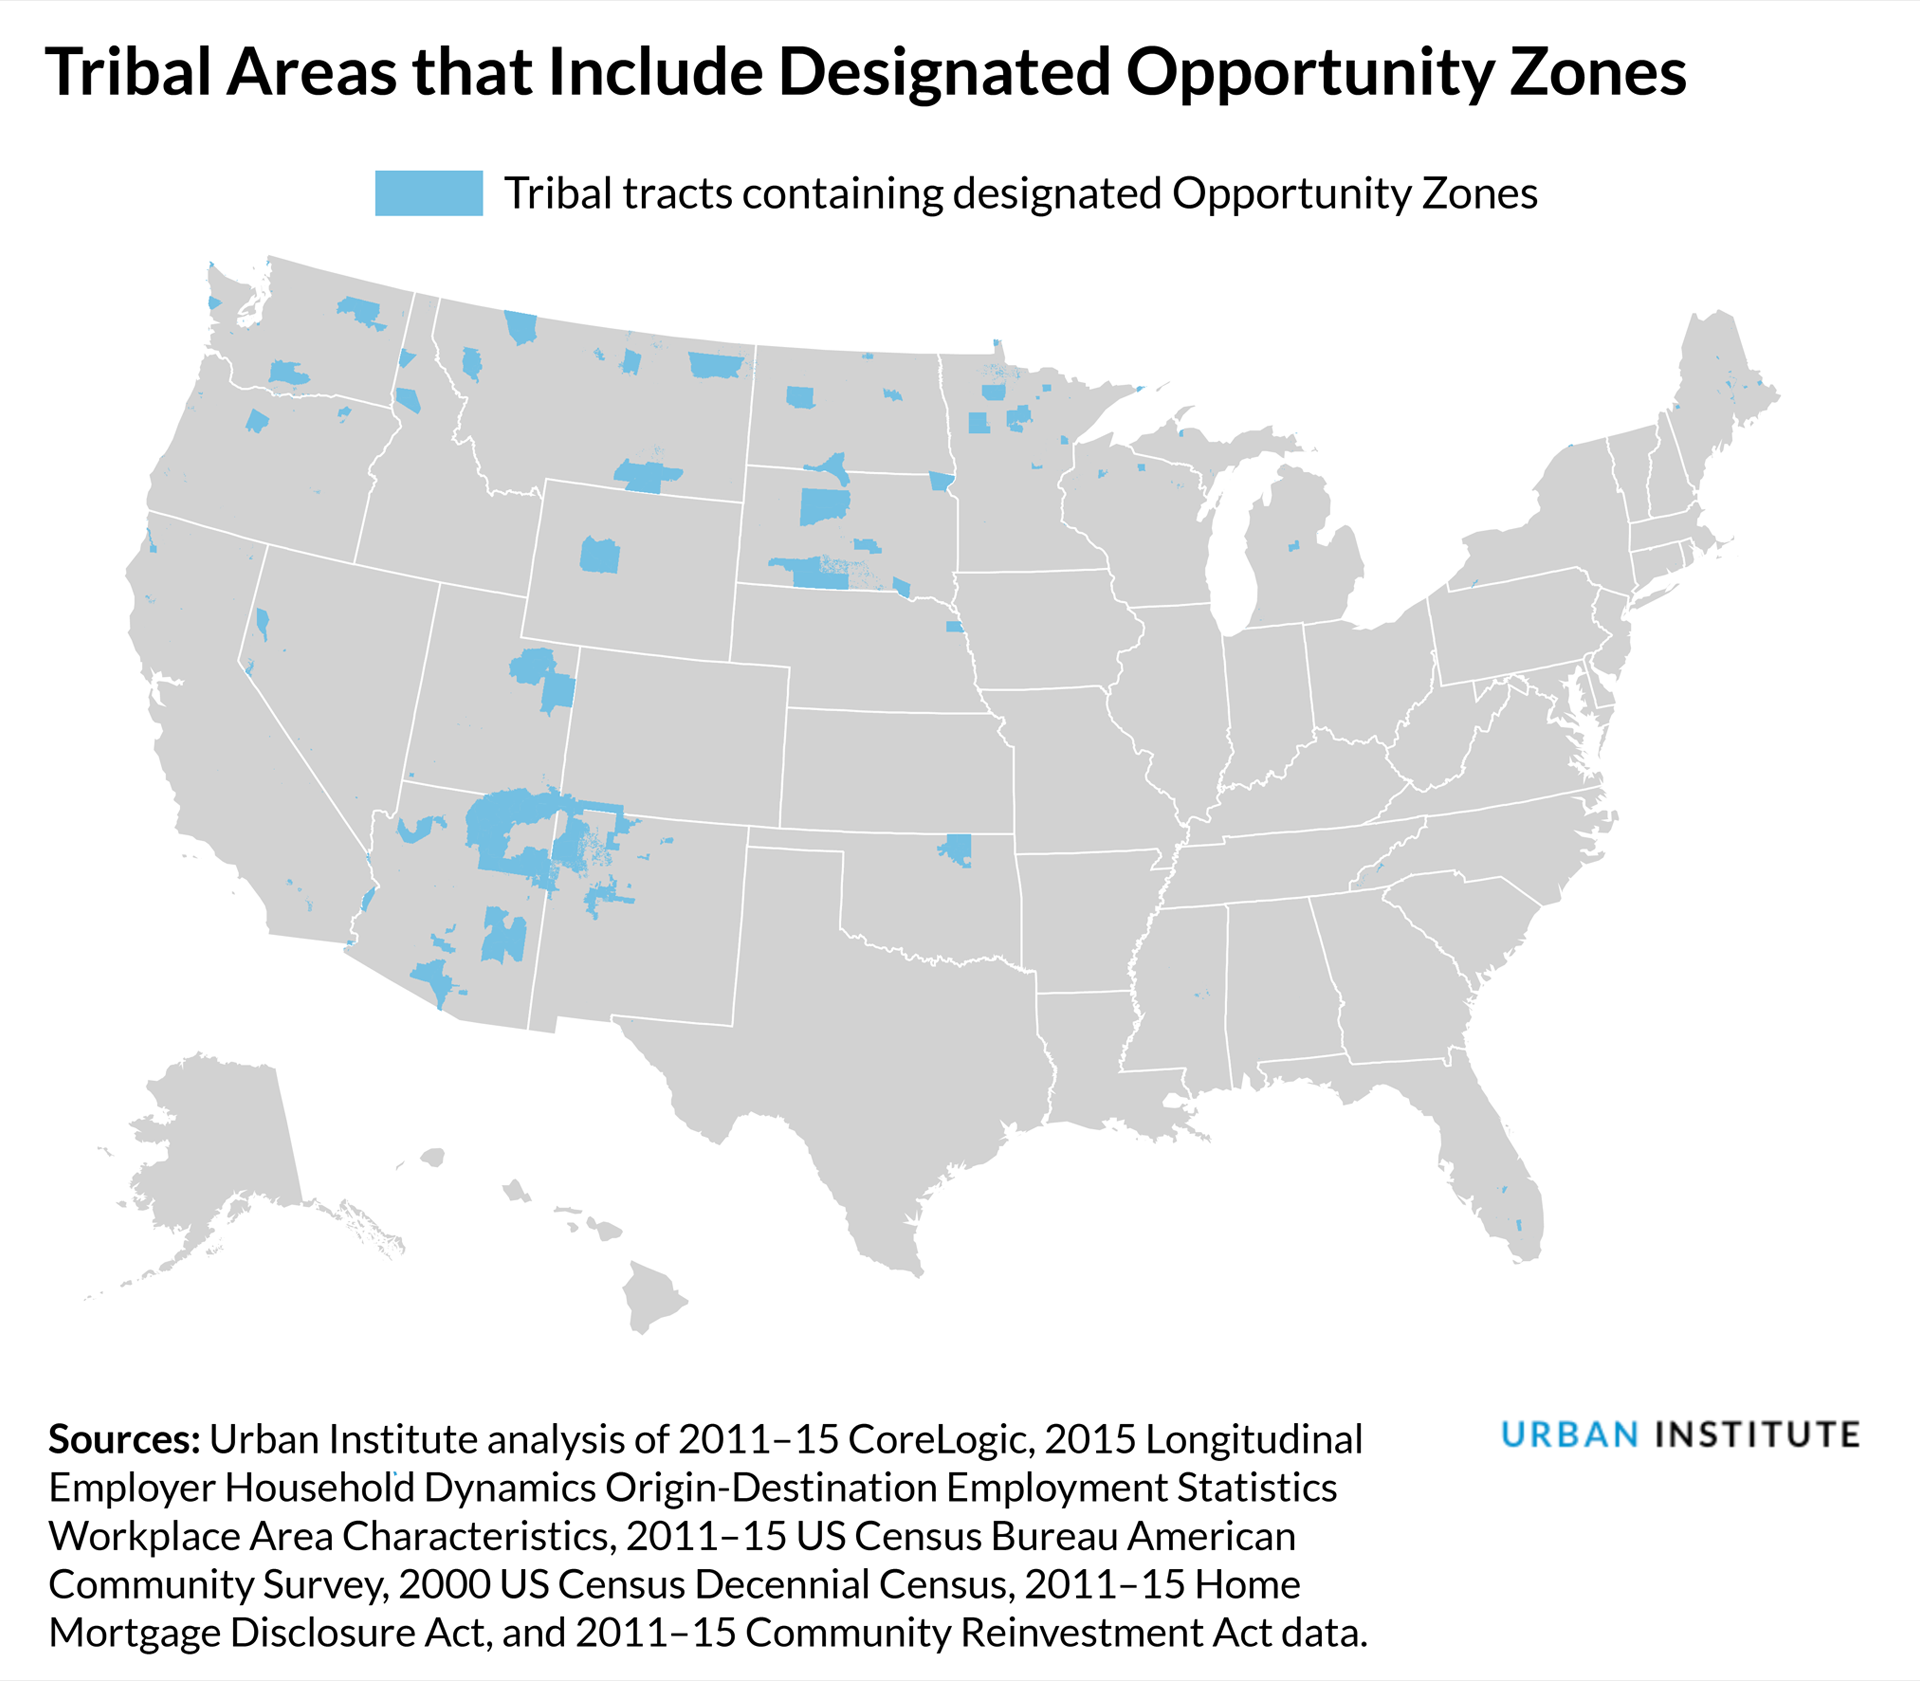 Tribal Areas that Include Designated Opportunity Zones